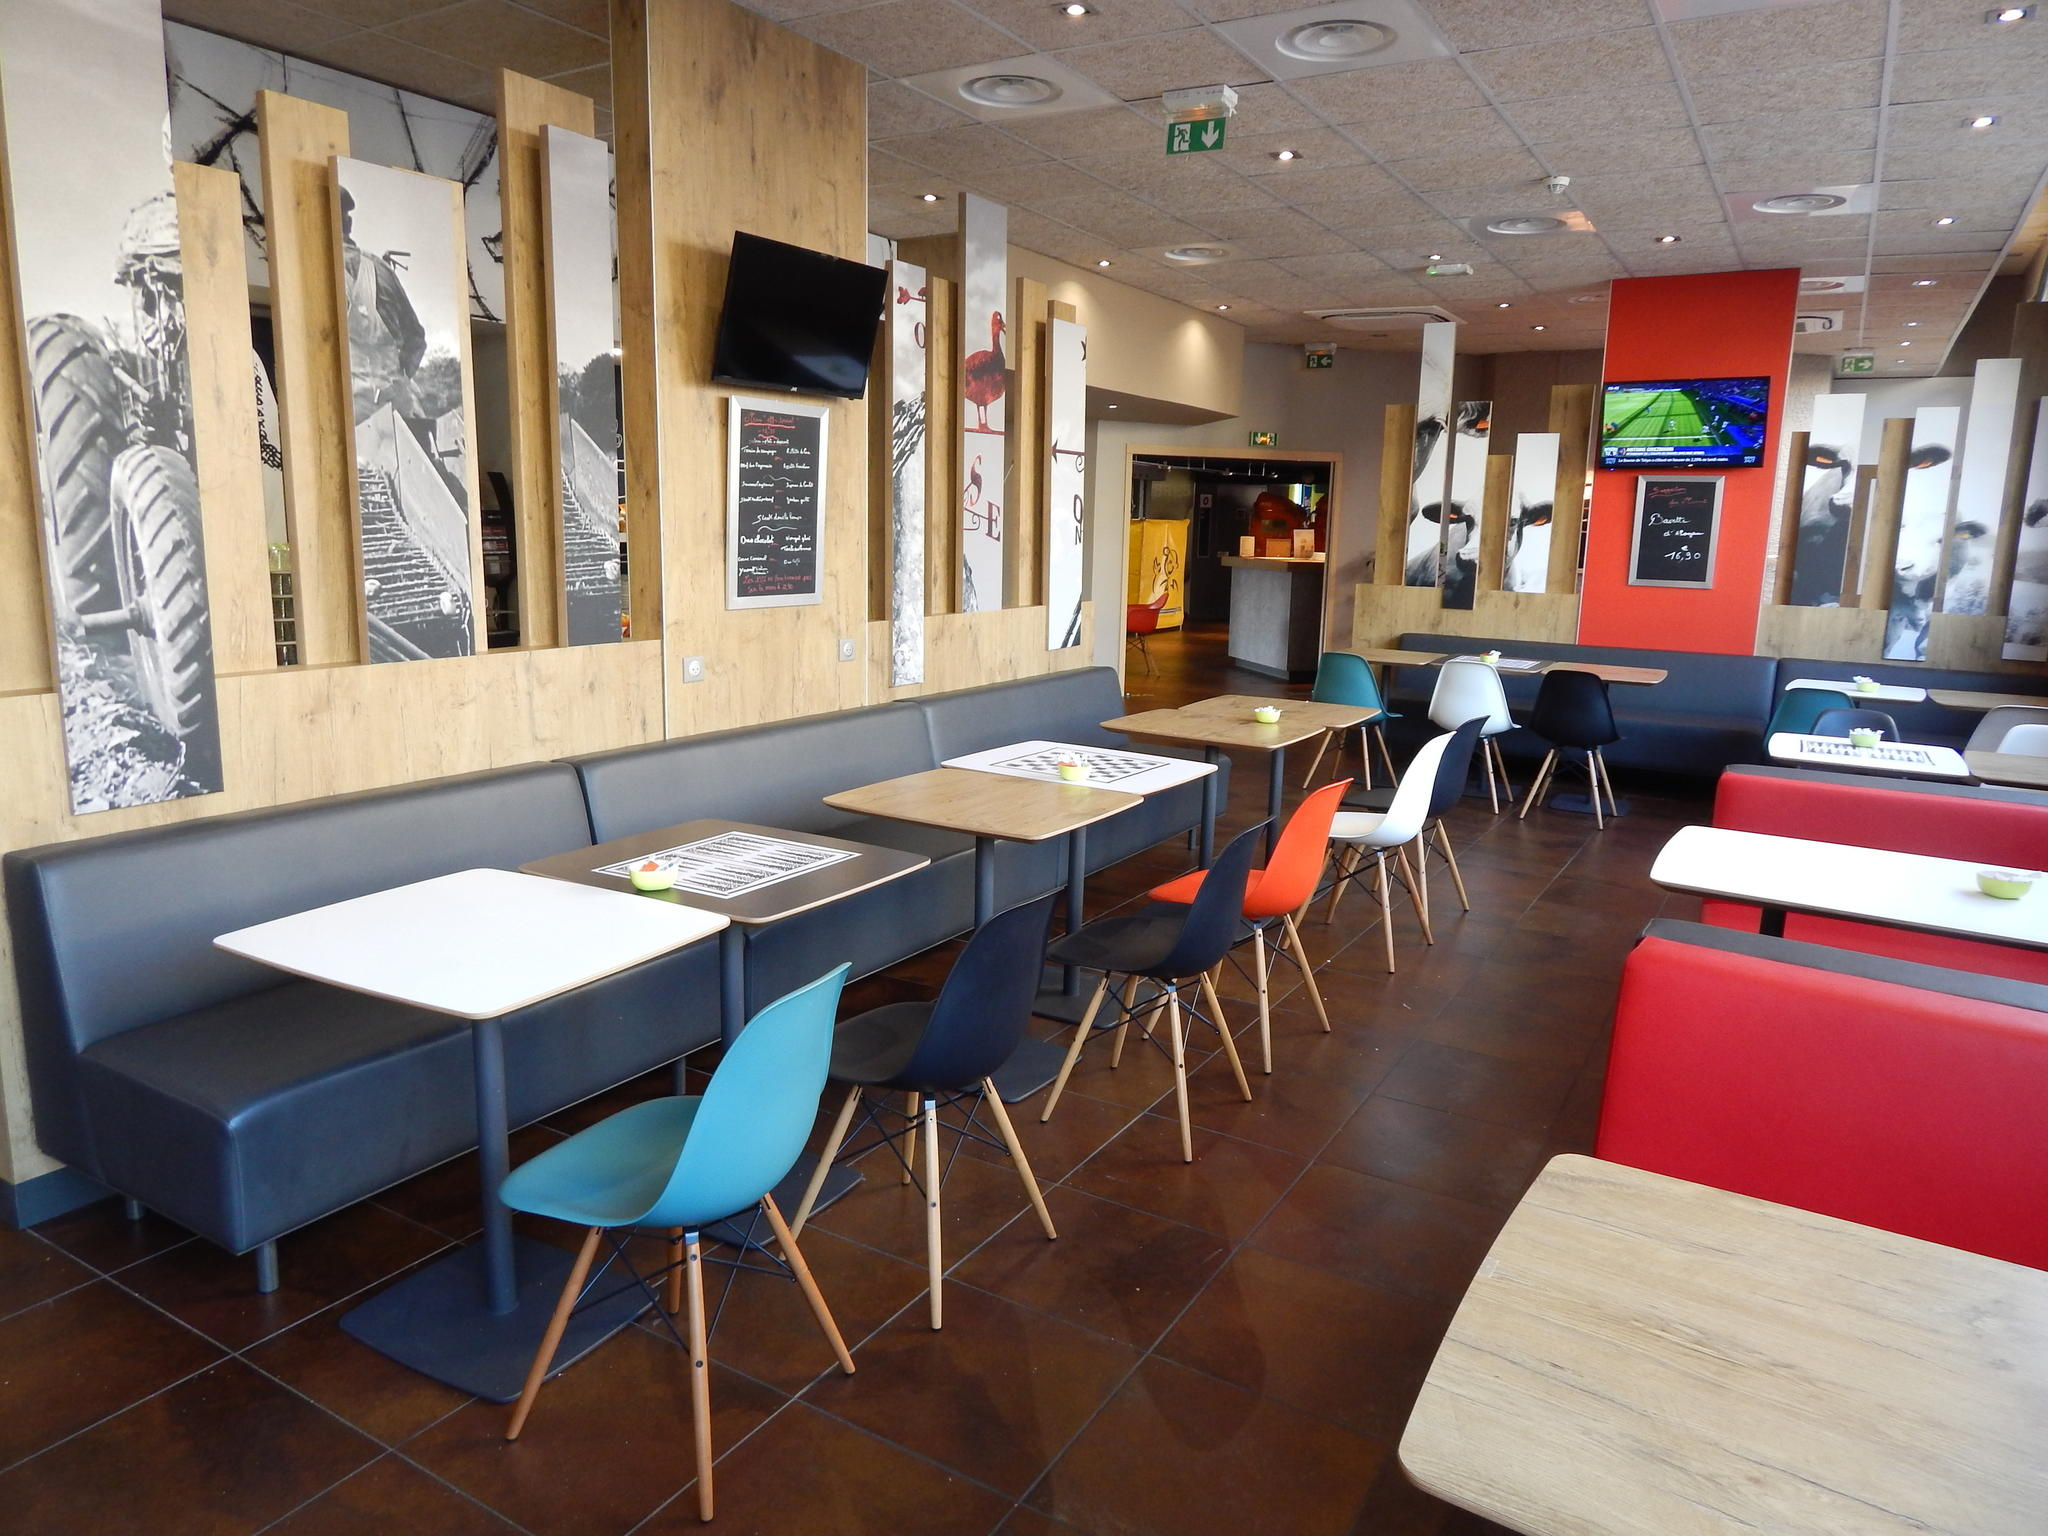 Hotel in limoges - ibis budget Limoges